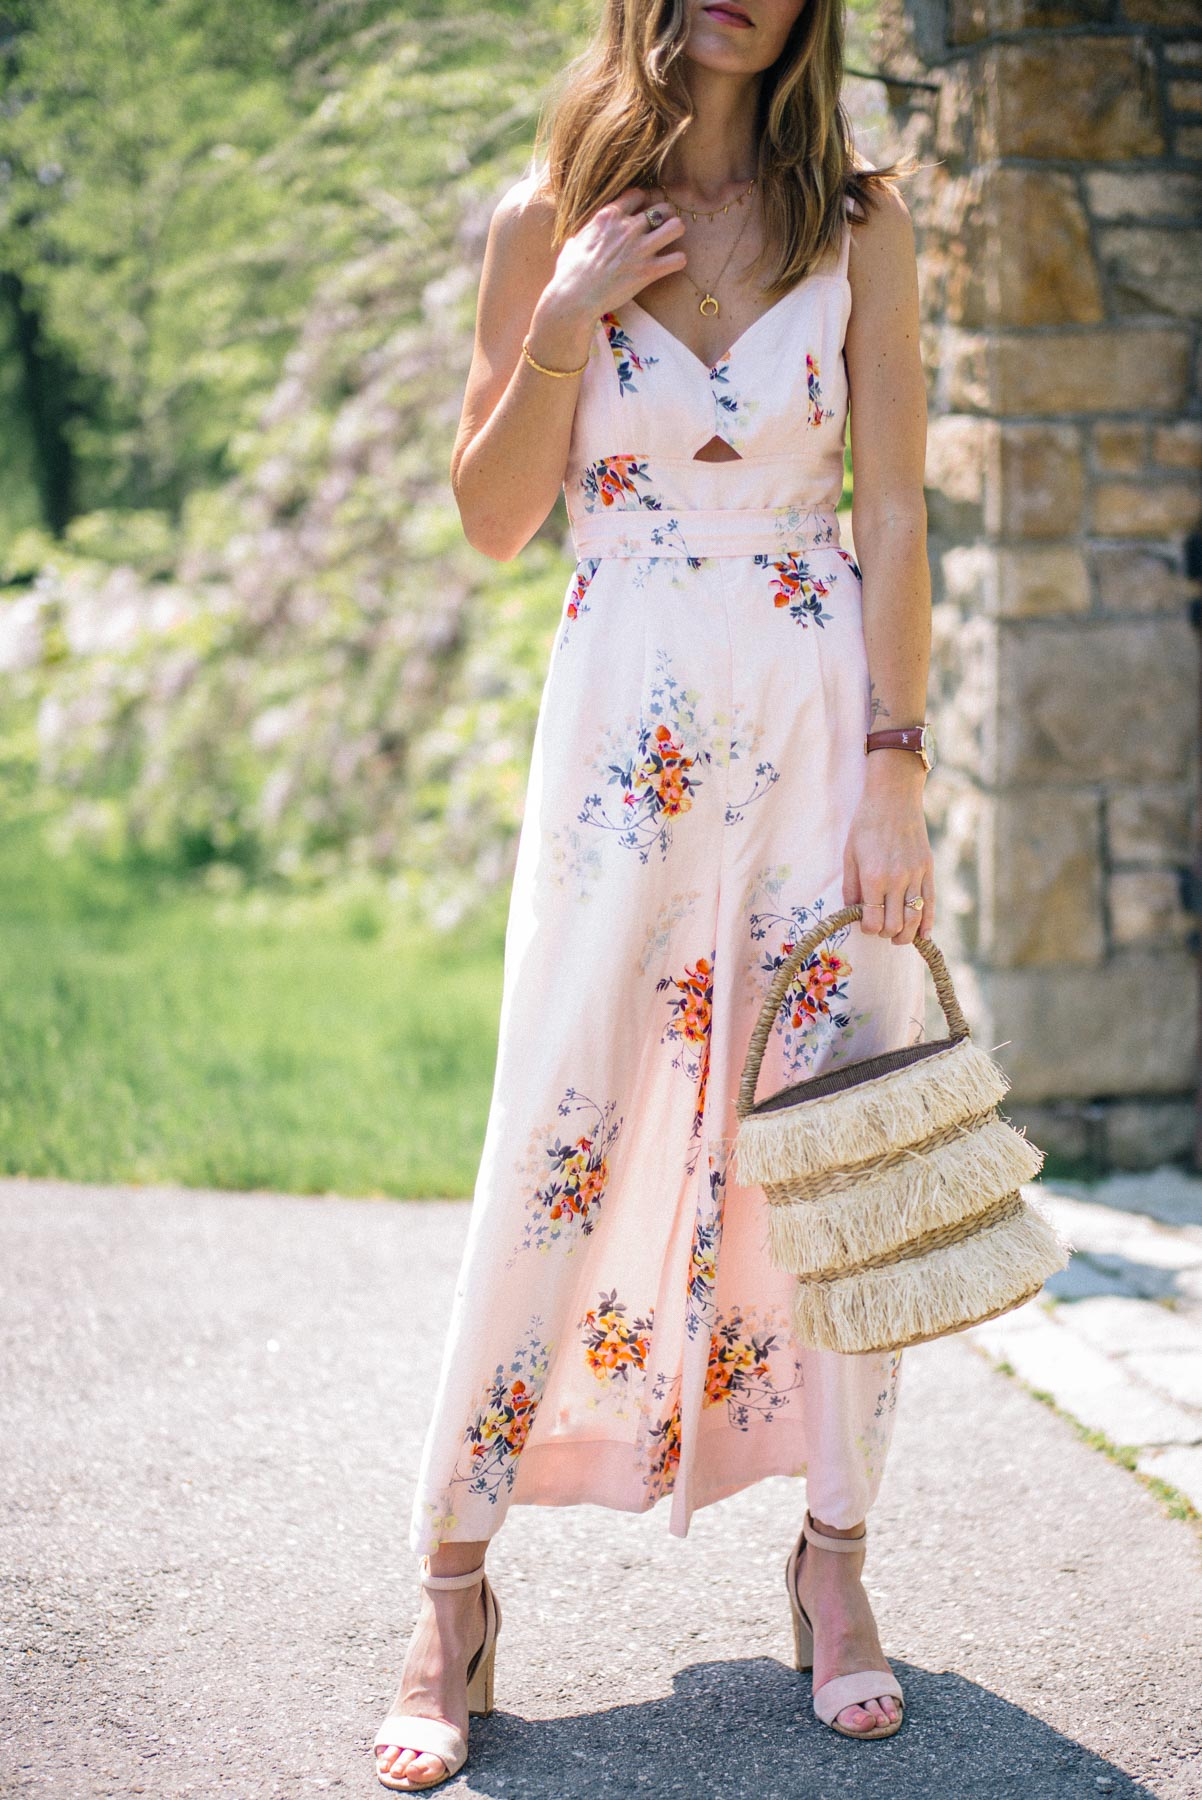 Jess Ann Kirby styles a floral printed jumpsuit with block heels and a straw tote